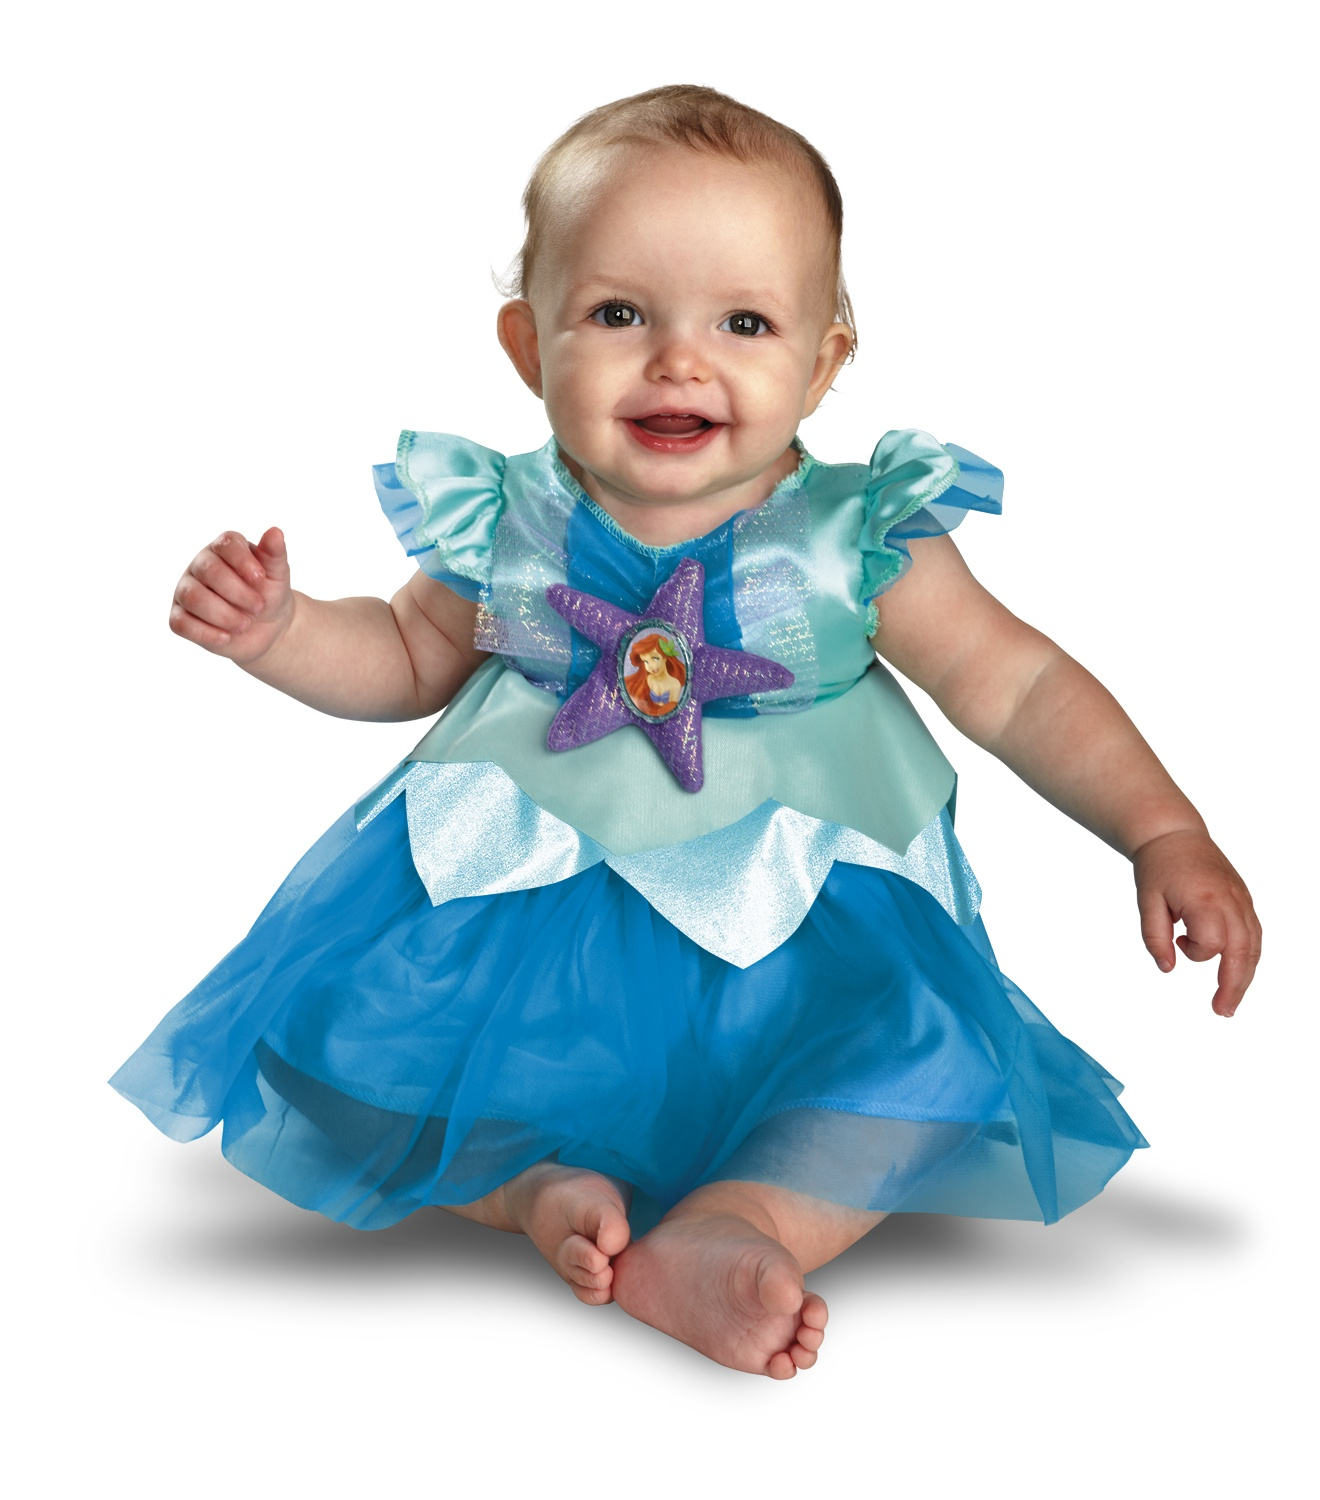 Dressing baby for his or her first few Halloweens is a delight for many parents! Whether you choose to match your baby's Halloween costume to your own or create a style just for your little one, we offer a variety of costumes for girls and boys.